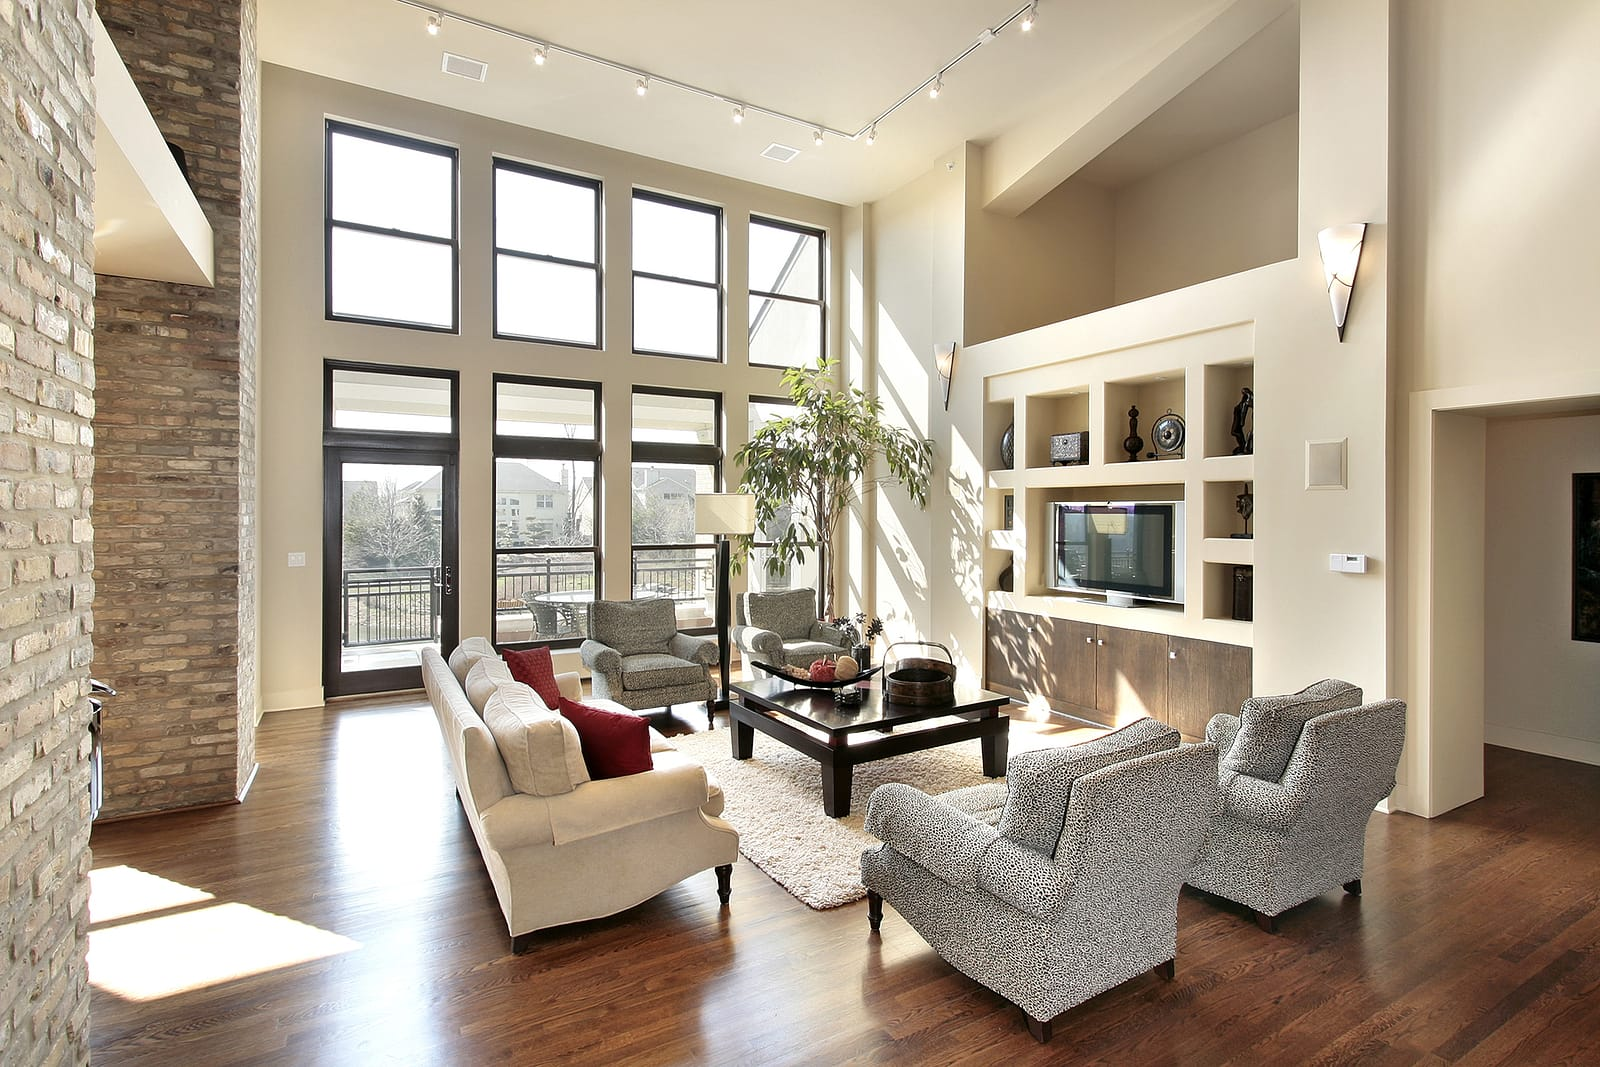 Real Estate and Homes for Sale - ERA on montana home furniture, parker home furniture, kingston home furniture, jordan home furniture,